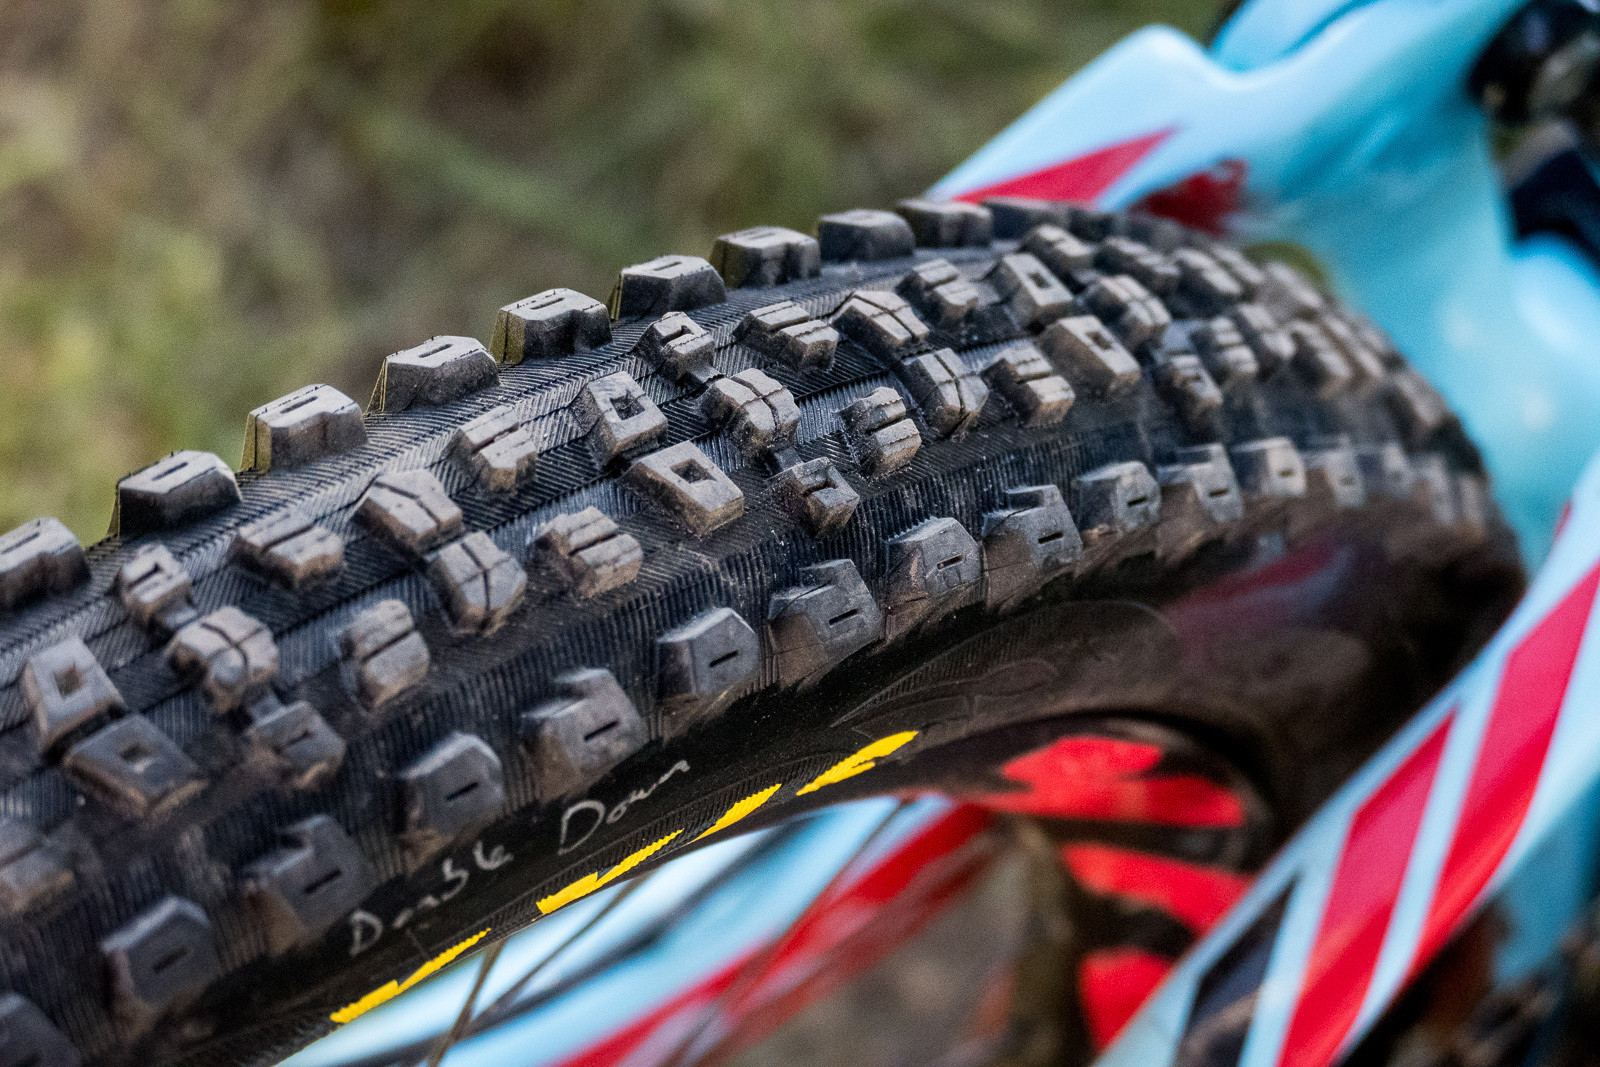 Prototype Maxxis Aggressor Tire with Double Down Casing - PIT BITS - Enduro World Series, Crested Butte, Colorado - Mountain Biking Pictures - Vital MTB